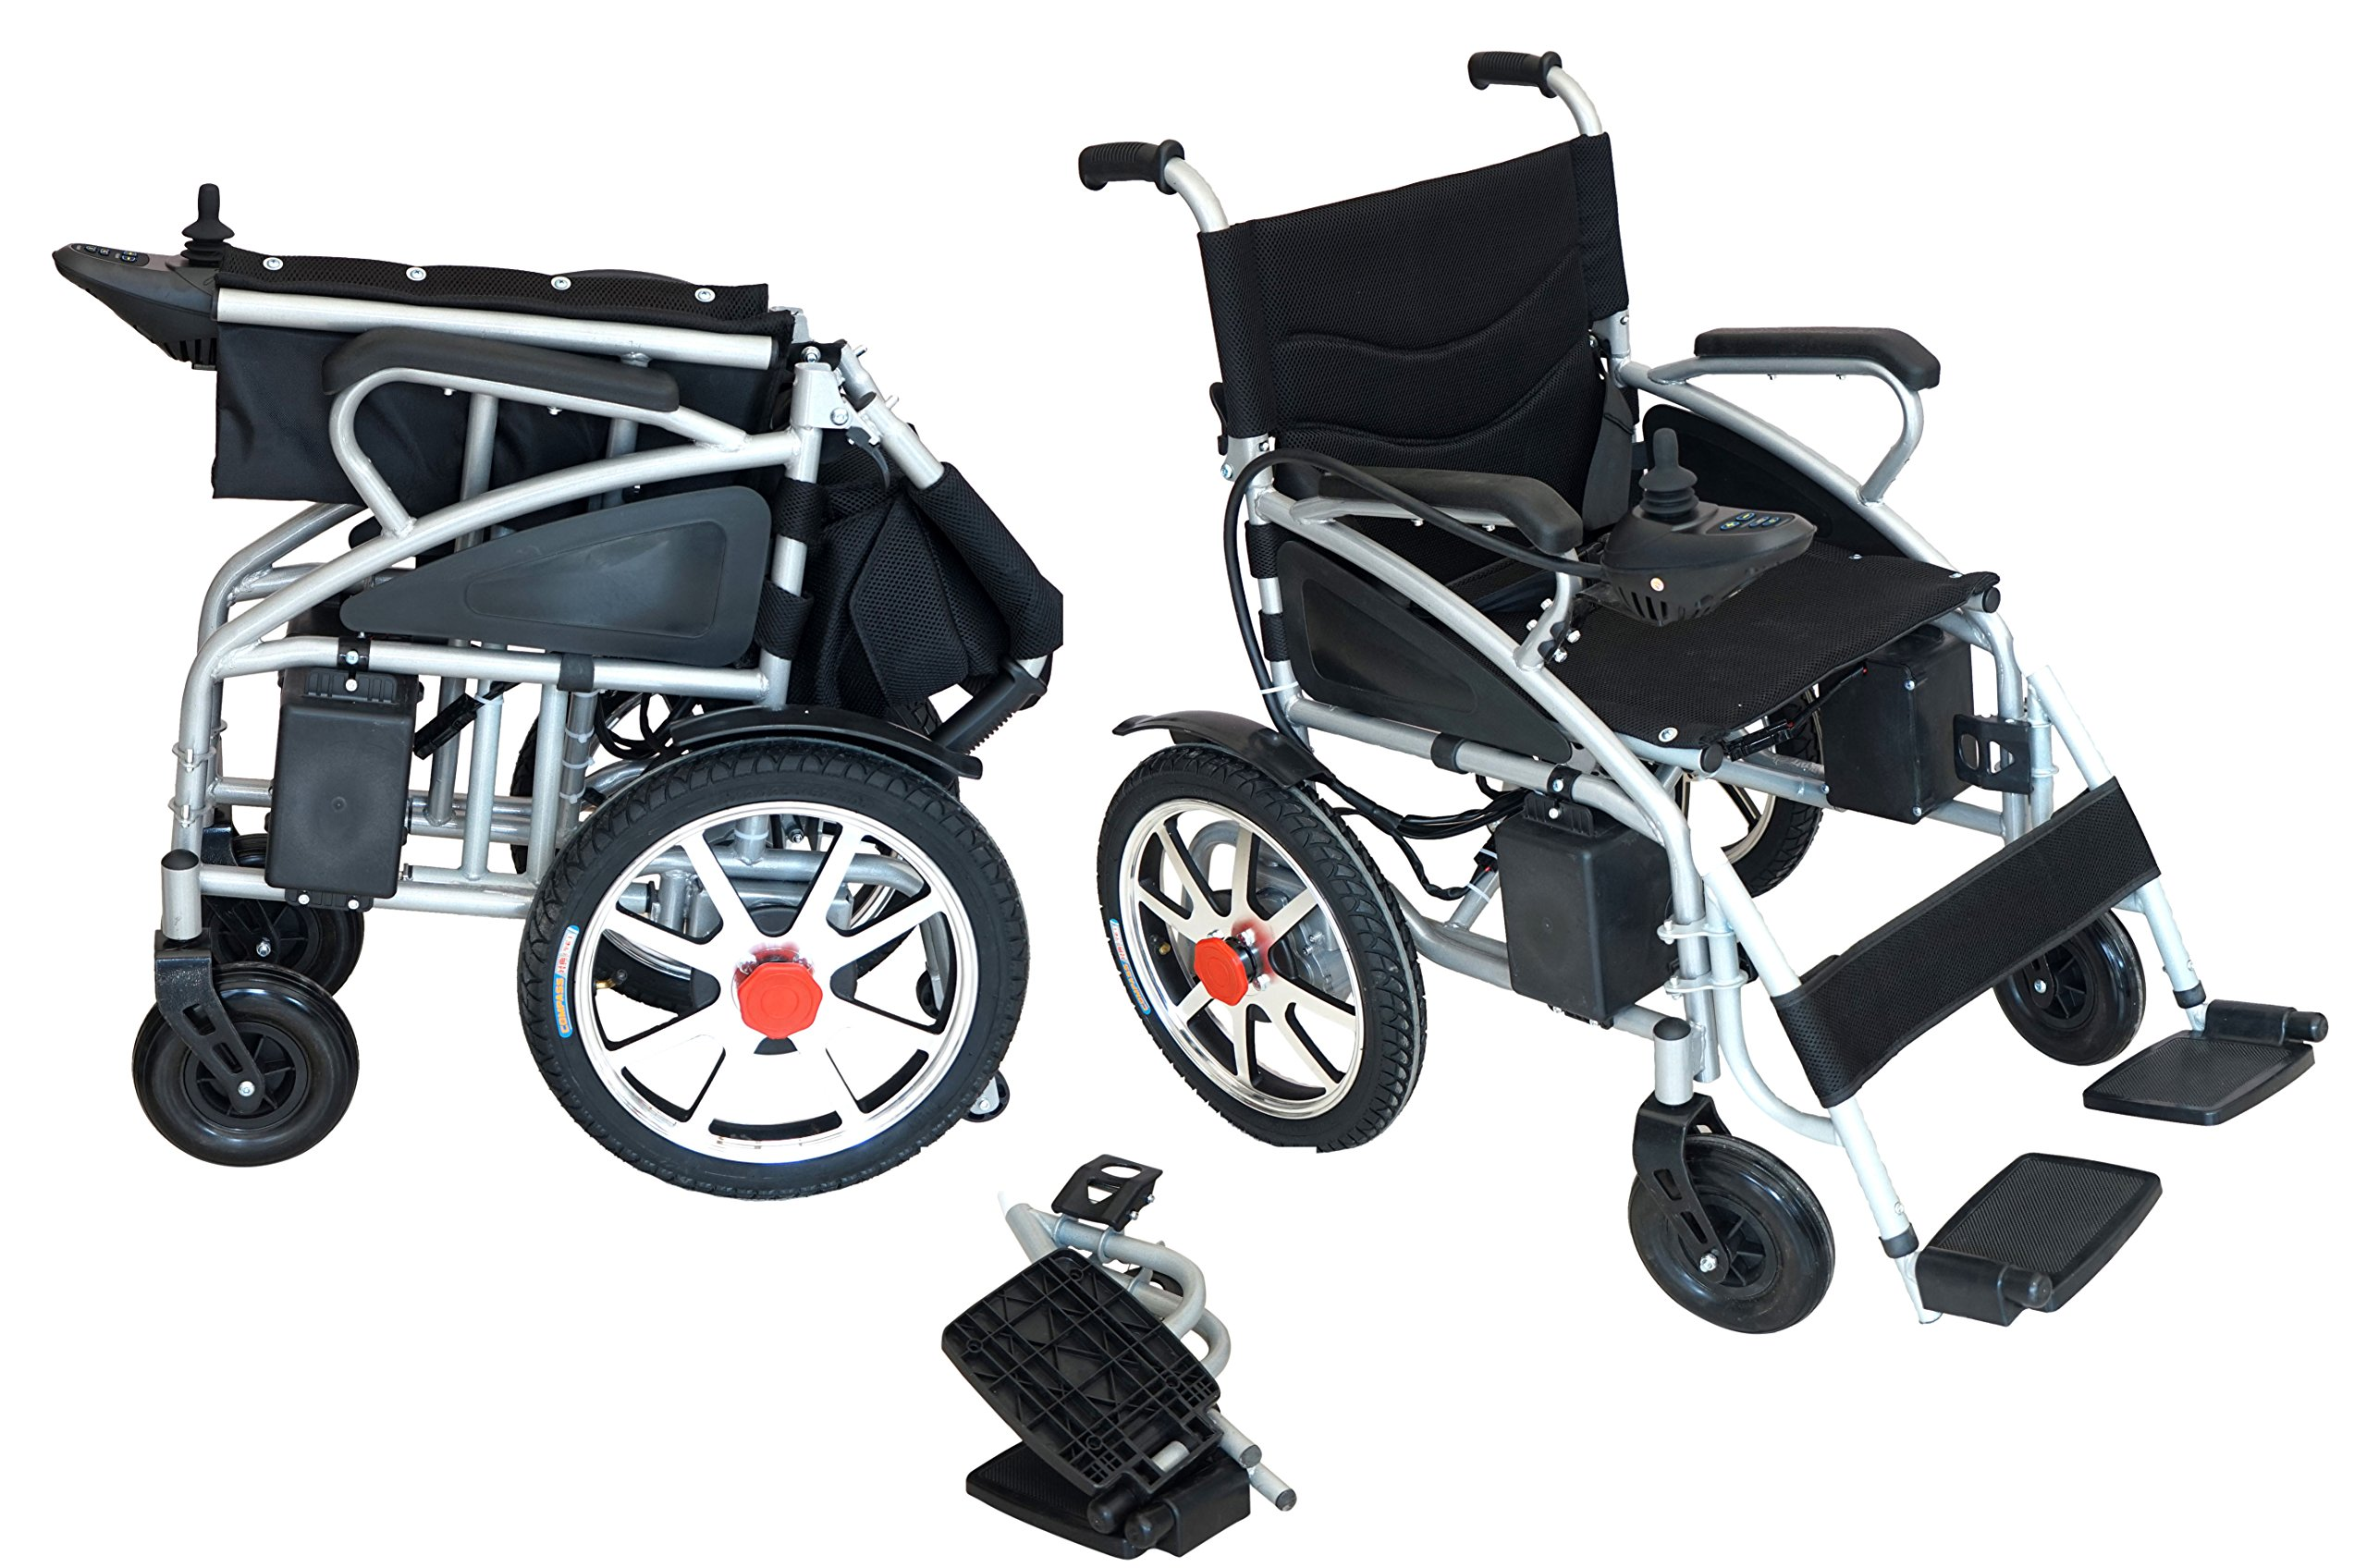 2018 NEW Comfy Go Electric Wheelchair - Foldable Lightweight Heavy Duty Electric Power Wheelchair